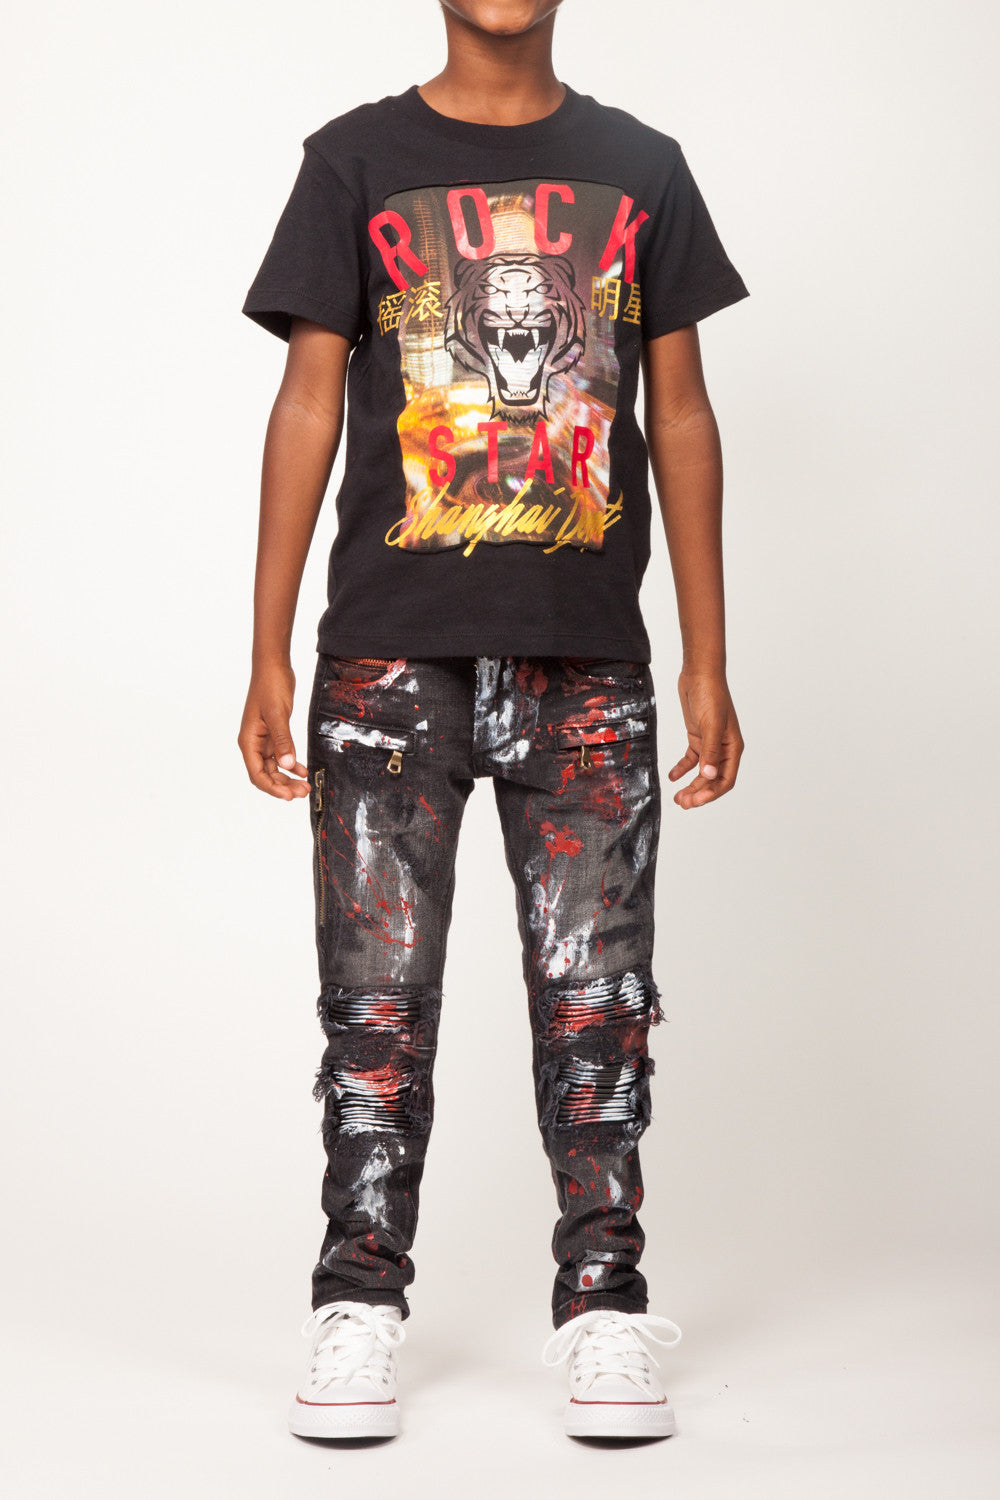 John Black Biker Denim T